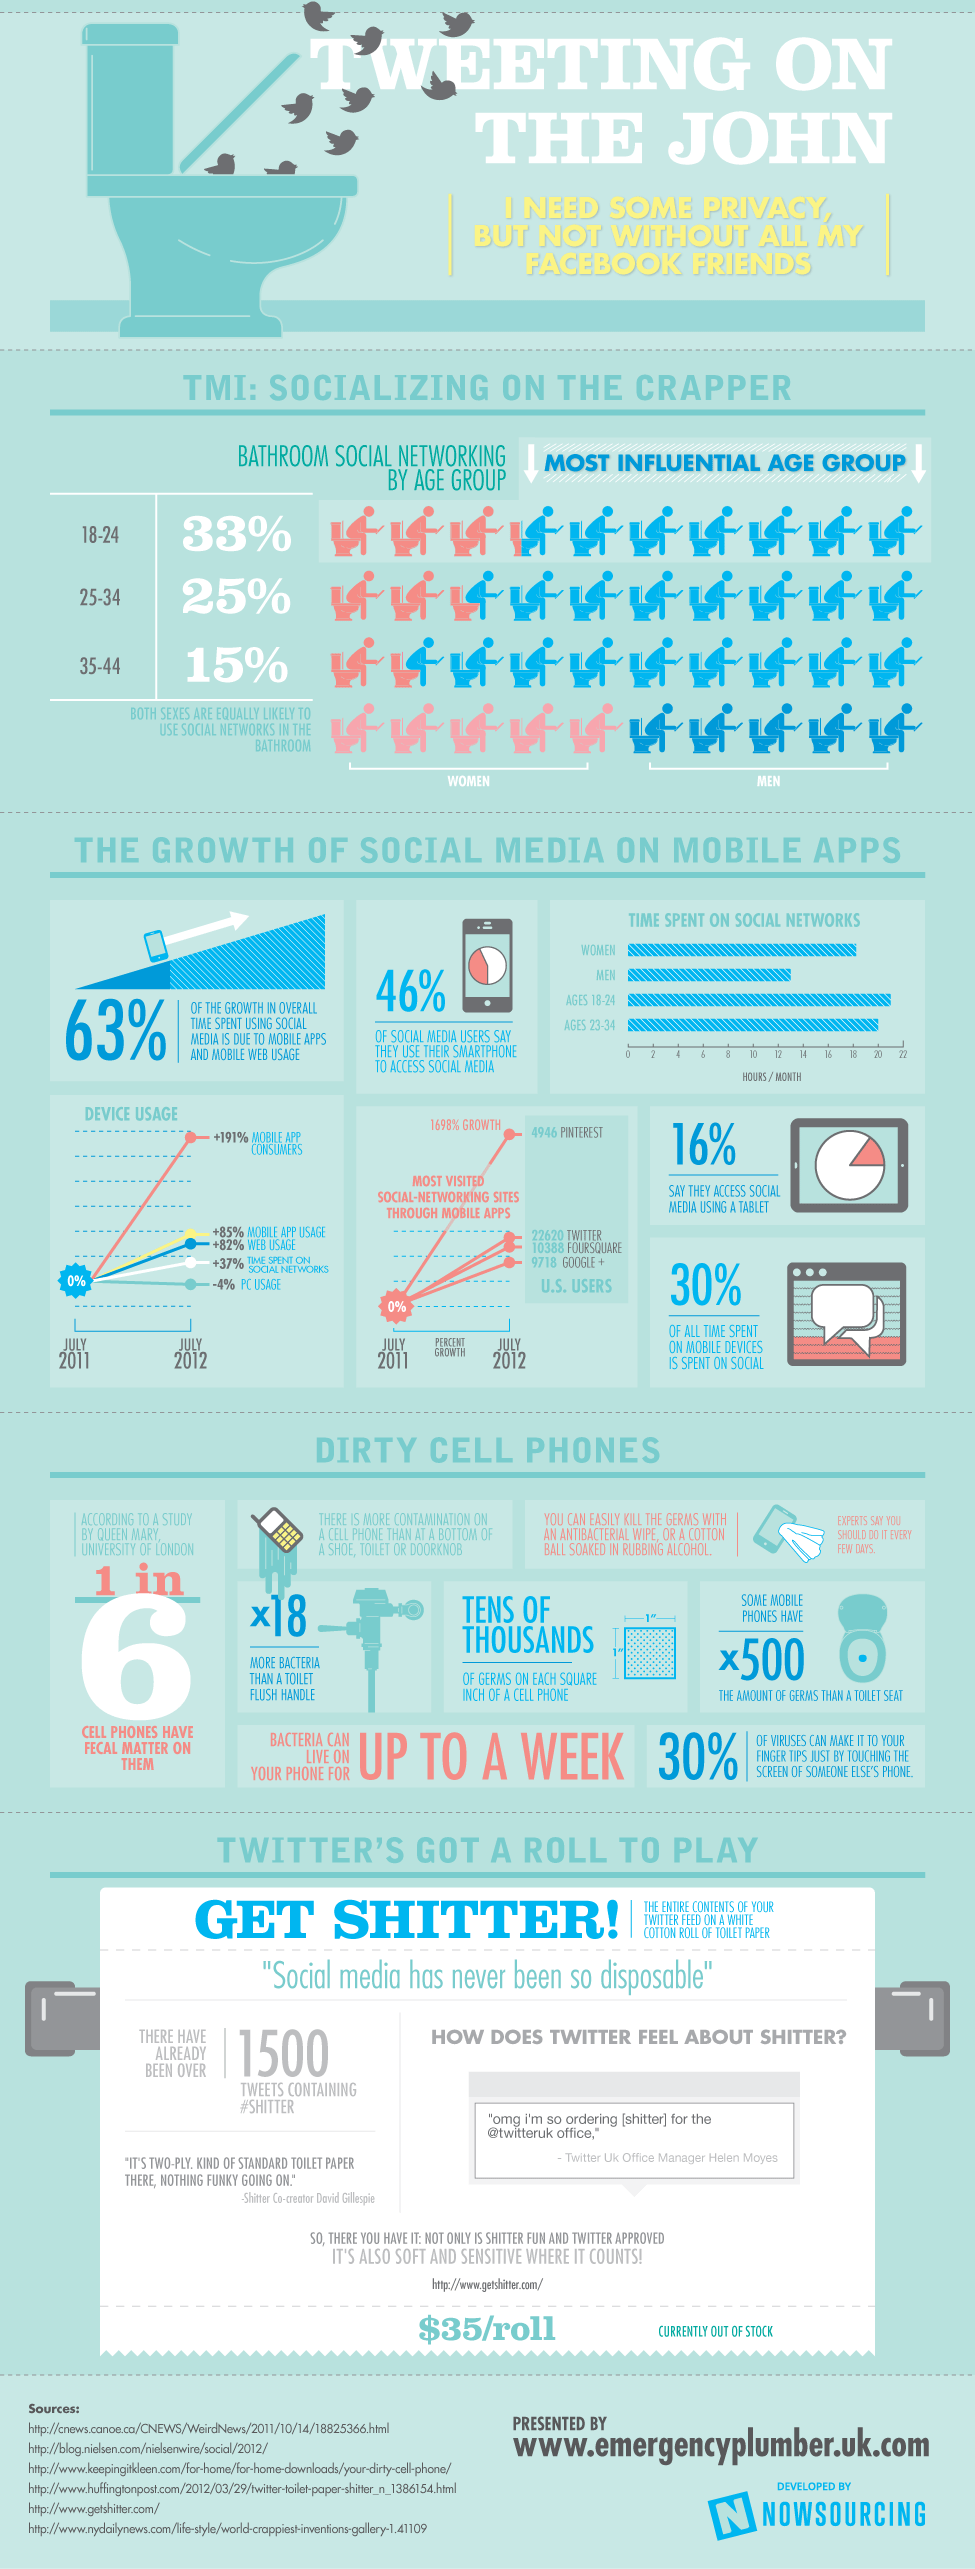 social media in the bathroom Tweeting On The John [Infographic]